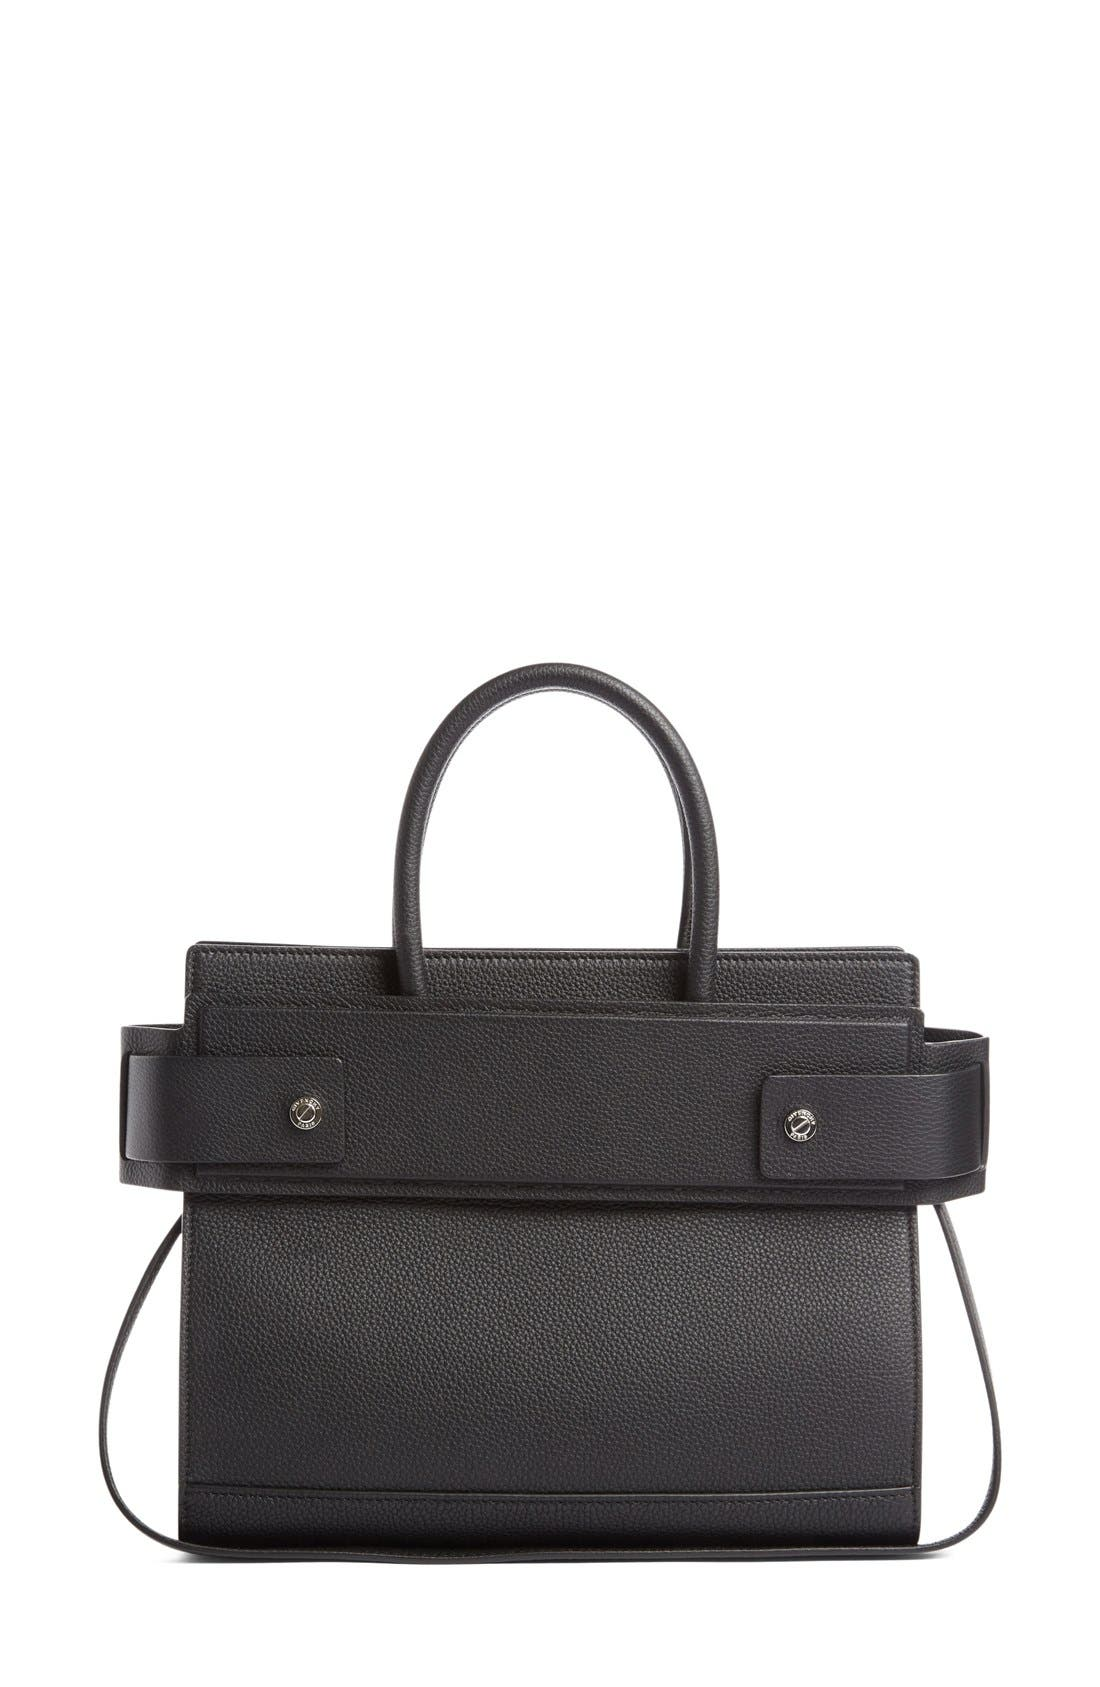 Small Horizon Grained Calfskin Leather Tote,                             Alternate thumbnail 6, color,                             BLACK